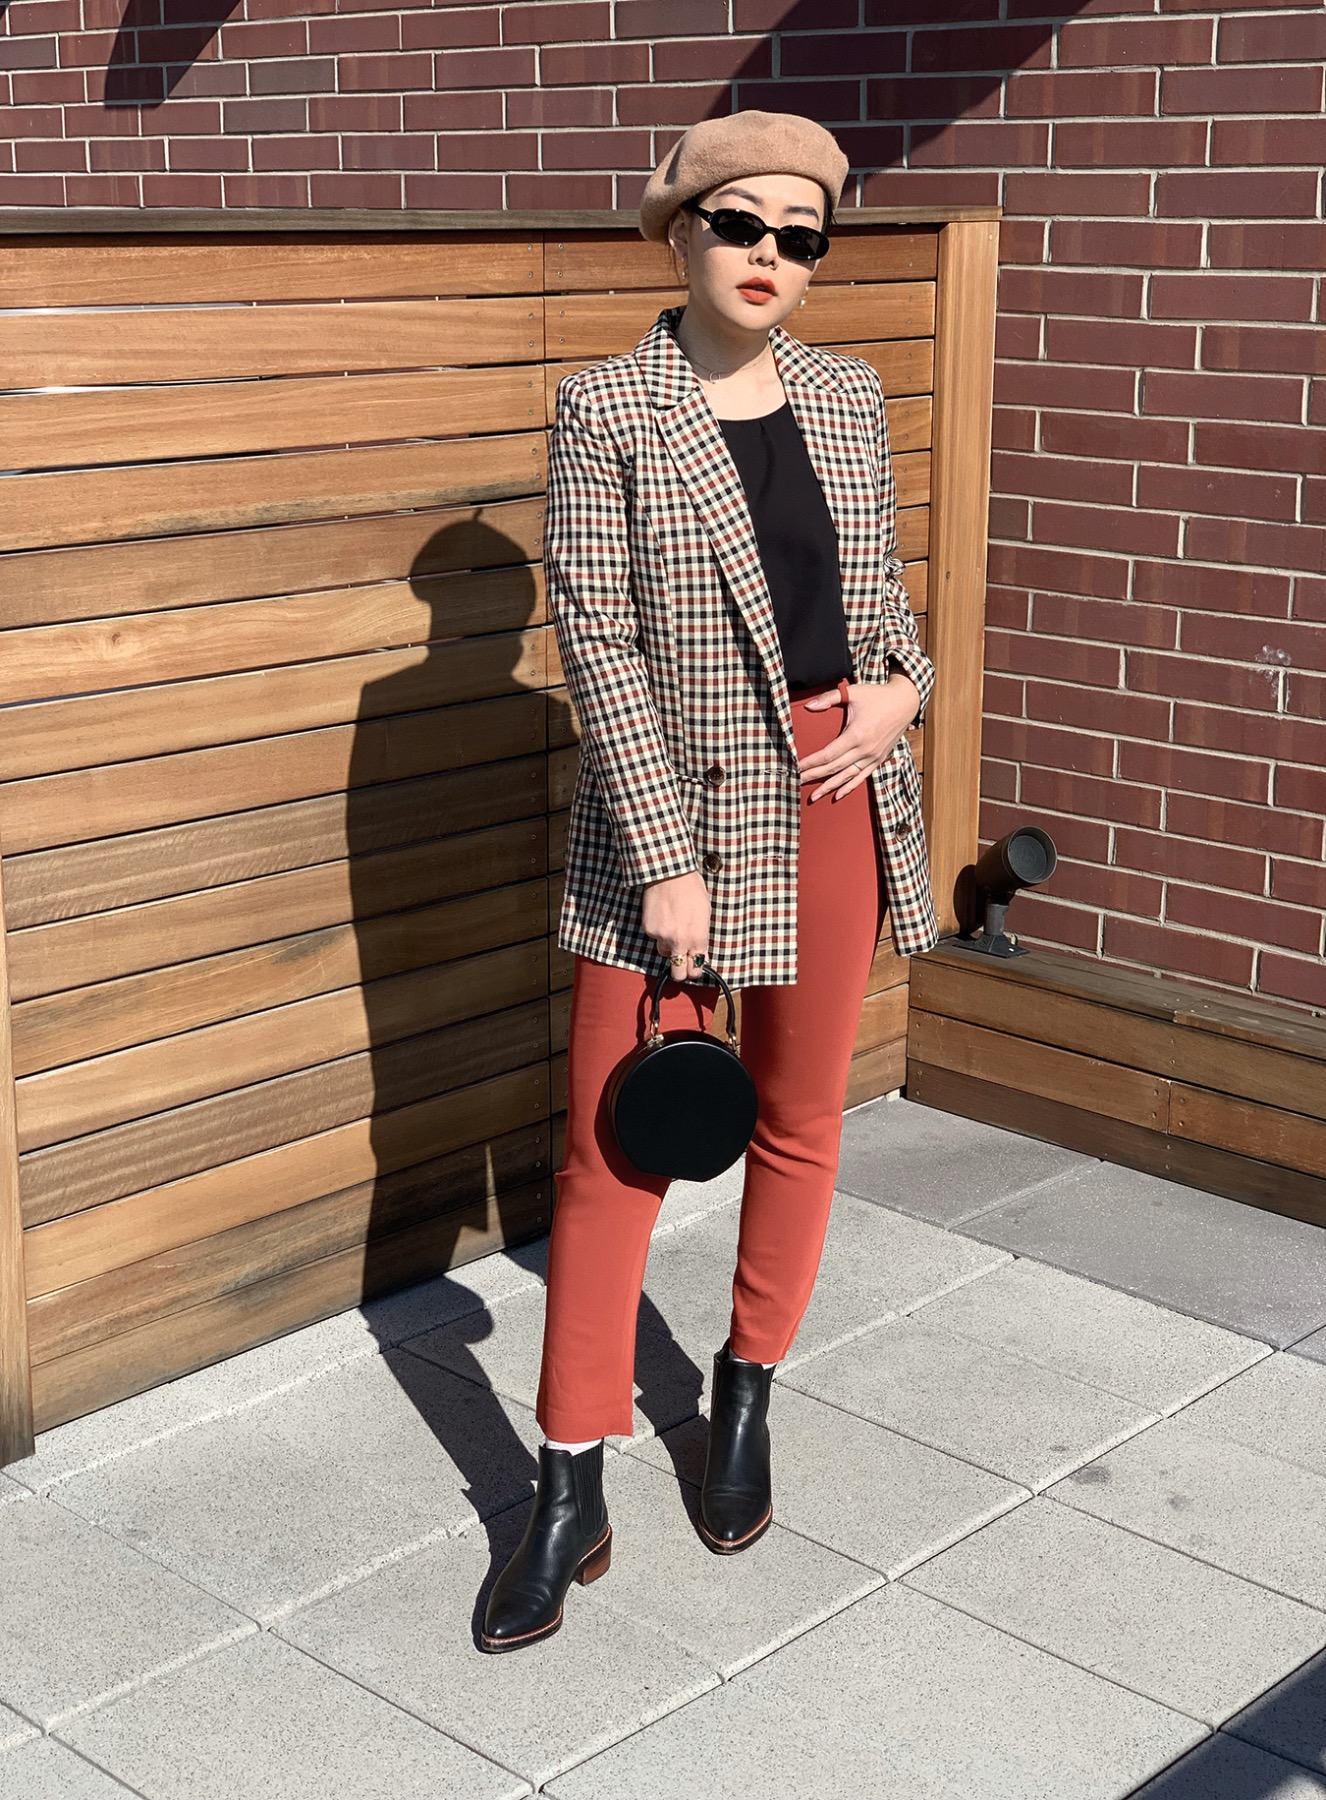 Fall winter 2018 color trends - How to wear color this fall - Burnt Orange.